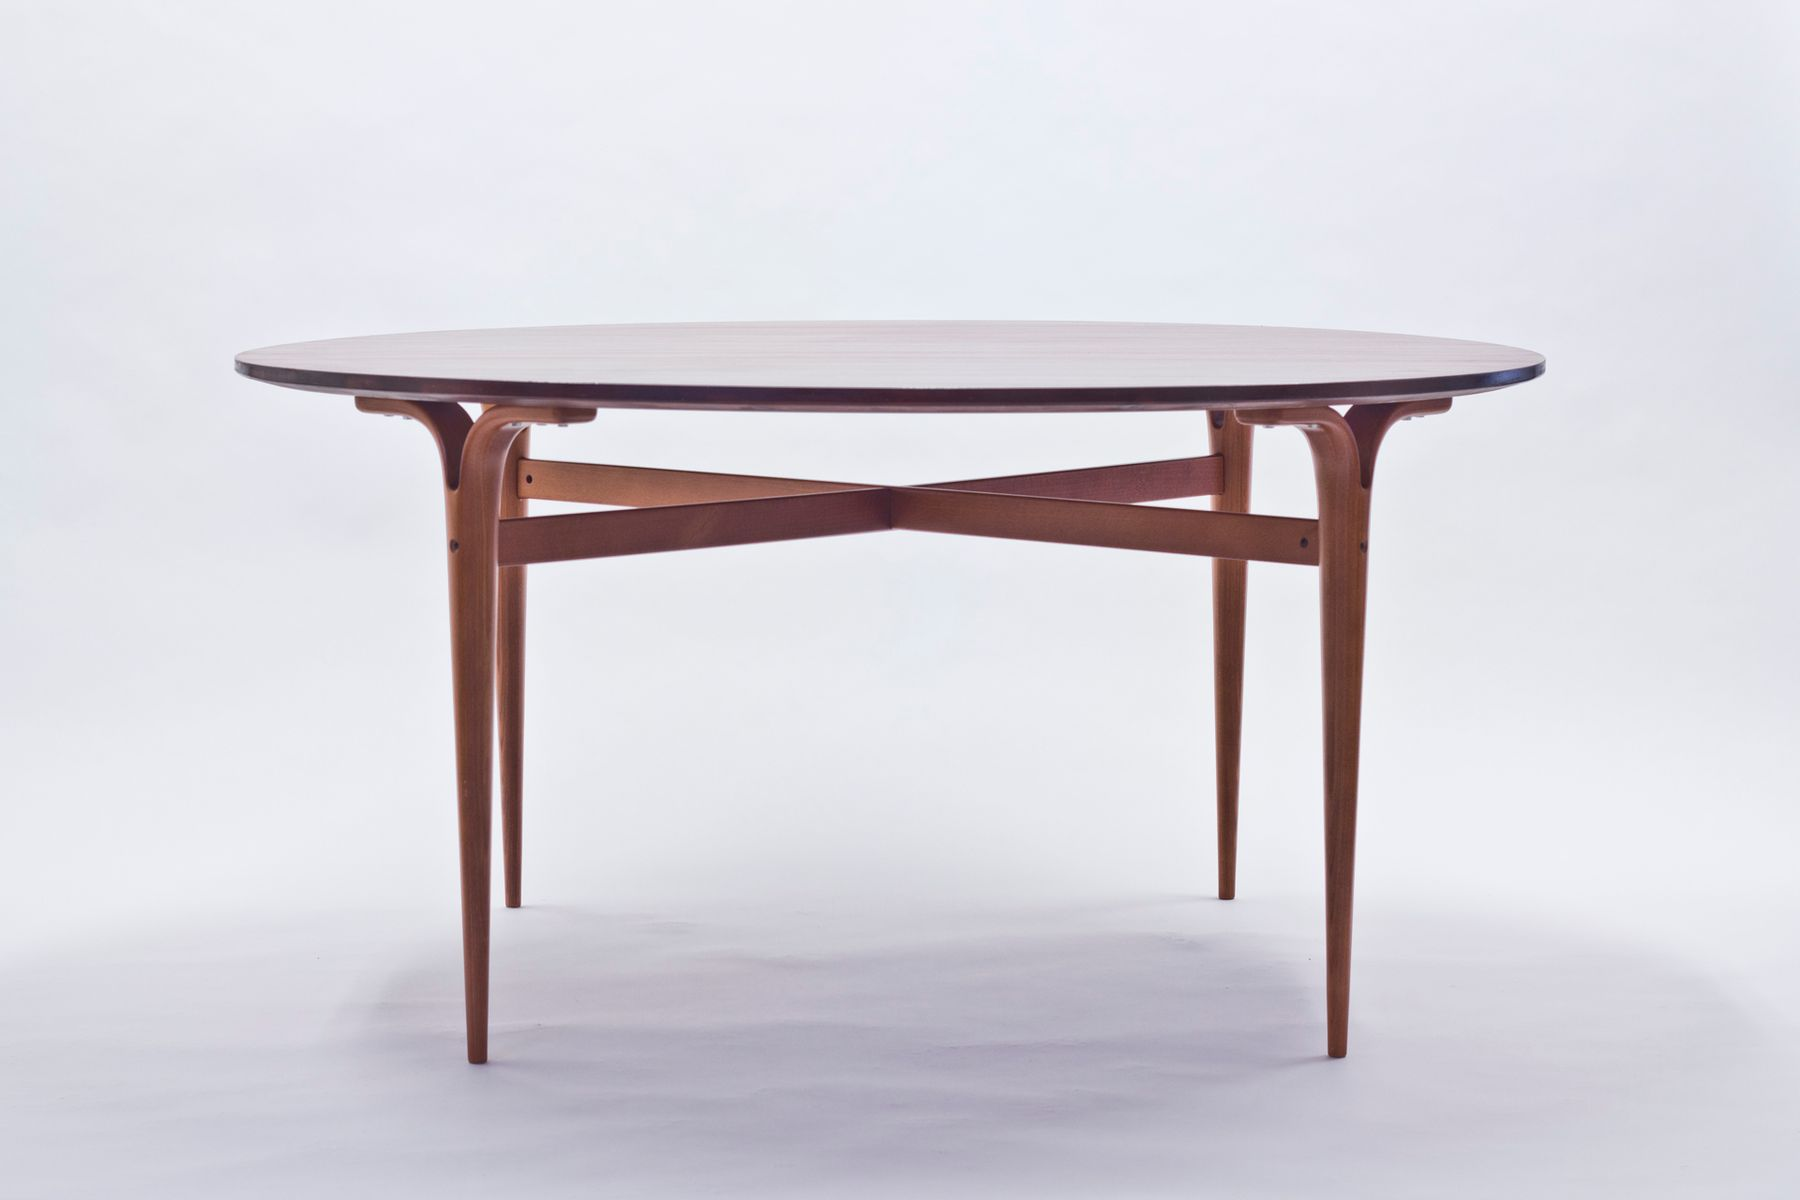 Round Mahogany Dining Table Model MI 753 by Bruno Mathsson  : round mahogany dining table model mi 753 by bruno mathsson for dux 1 from www.pamono.com size 1800 x 1200 jpeg 51kB